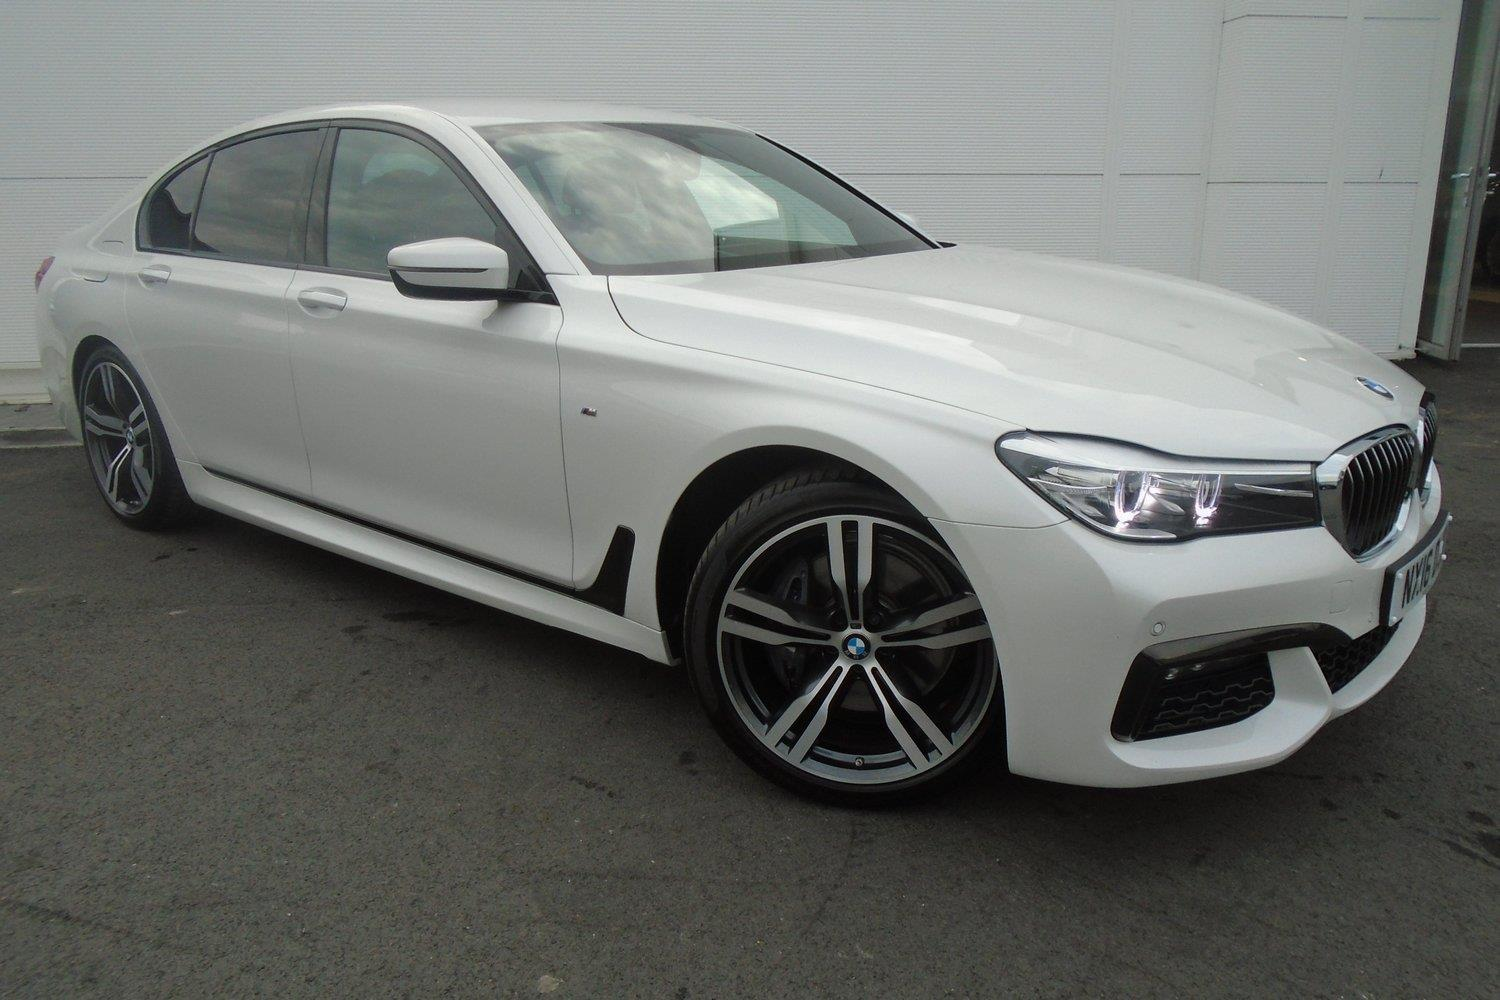 BMW 7 Series Saloon NX16DJD - Image 9